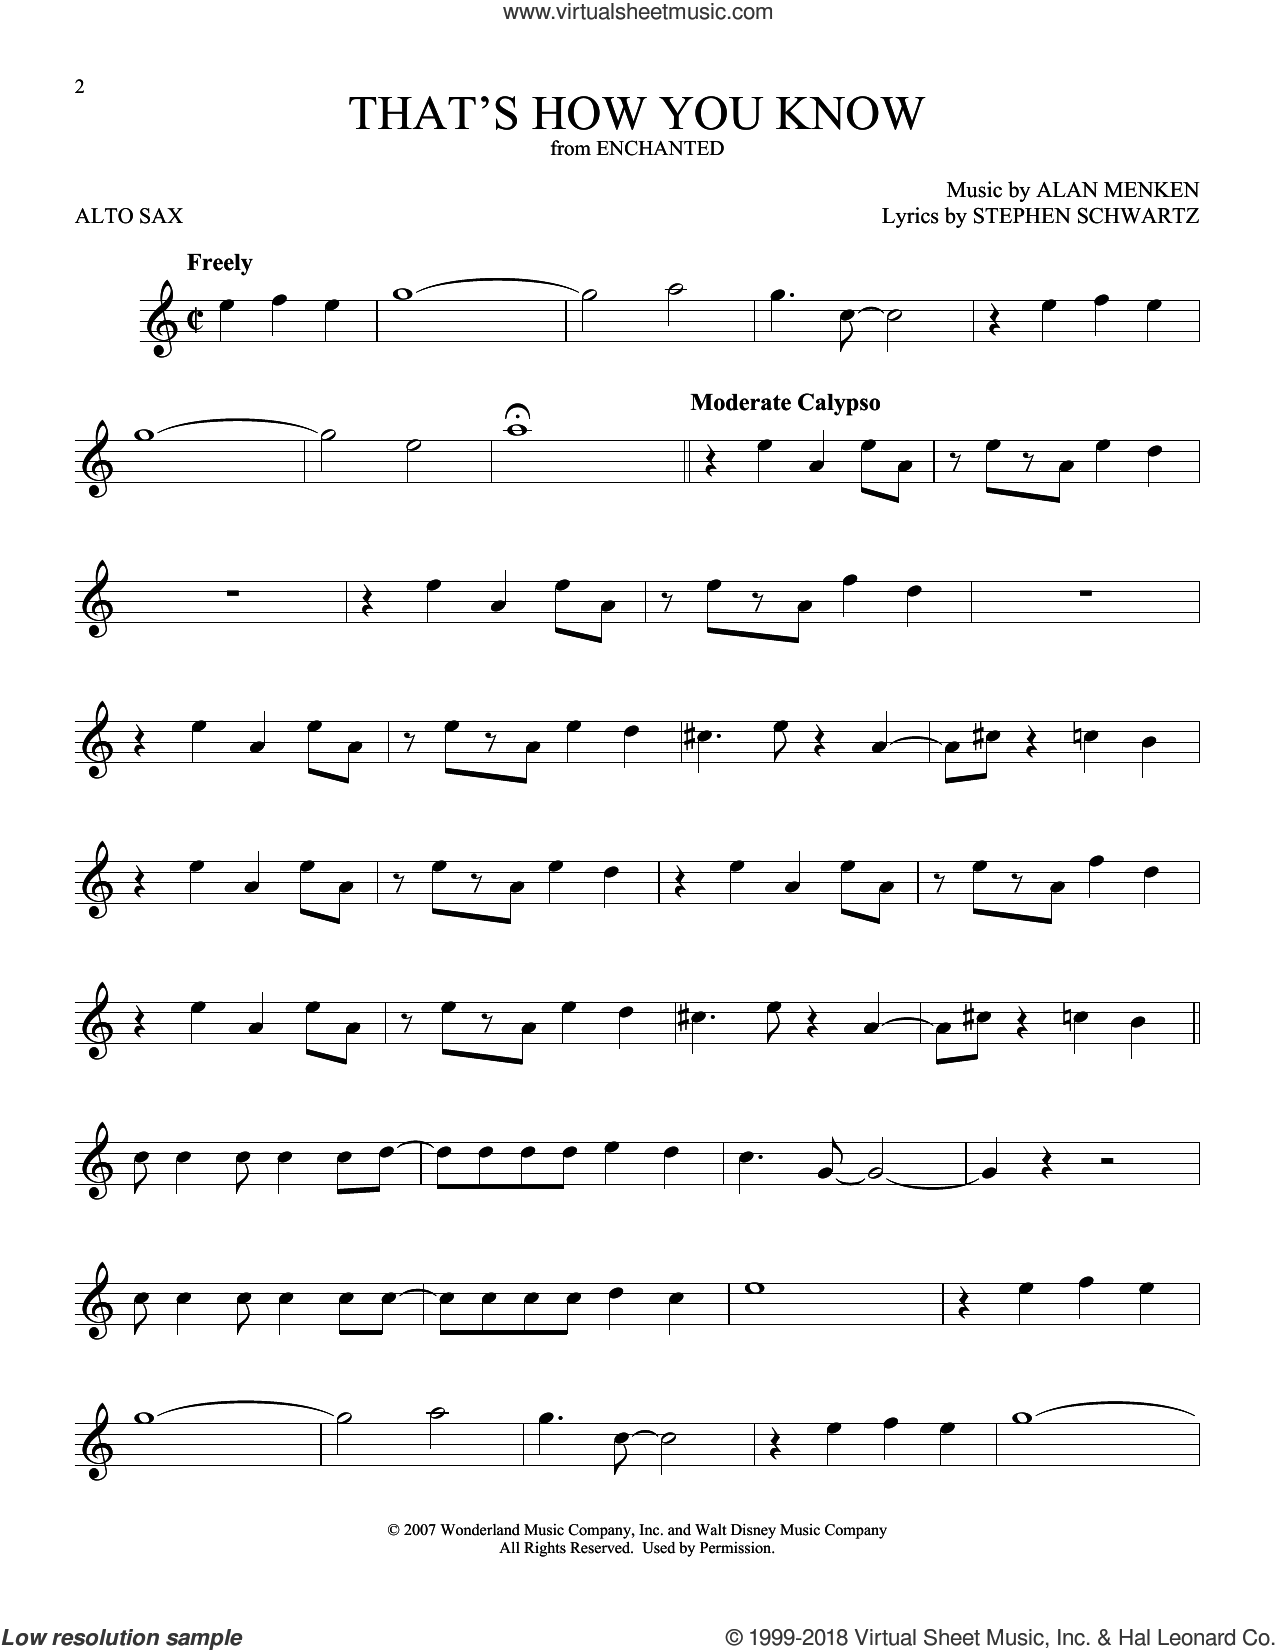 That's How You Know (from Enchanted) sheet music for alto saxophone solo by Alan Menken and Stephen Schwartz, intermediate skill level